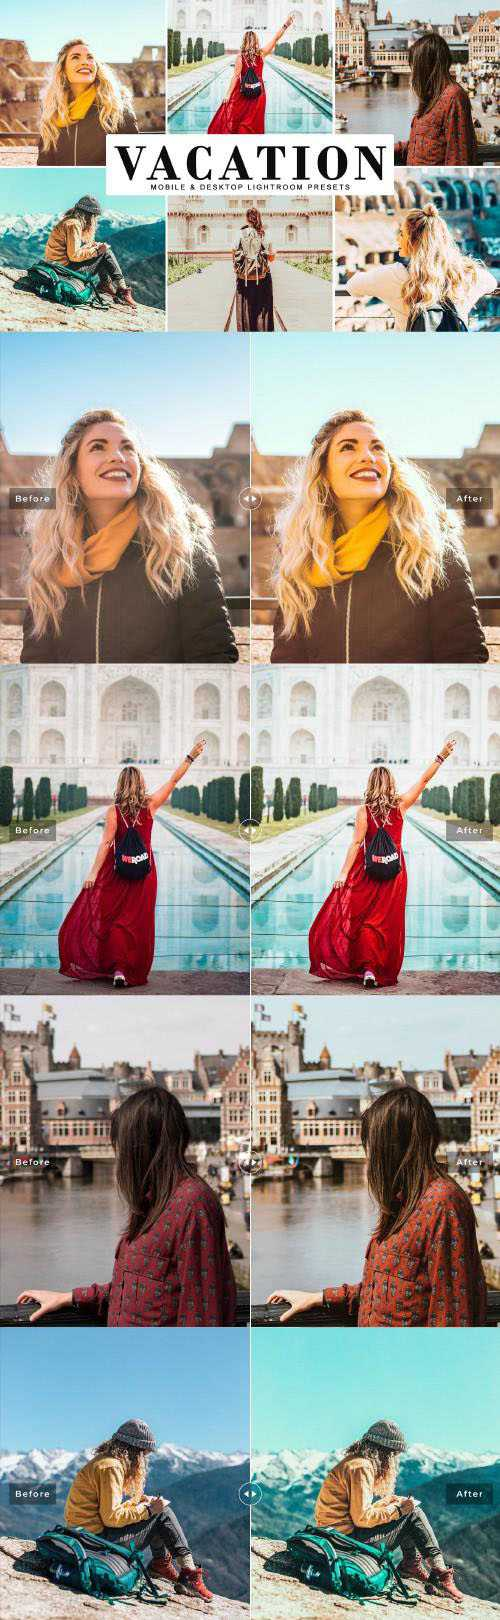 Vacation Lightroom Presets Pack - 3983370 - Mobile & Desktop Lightroom Presets